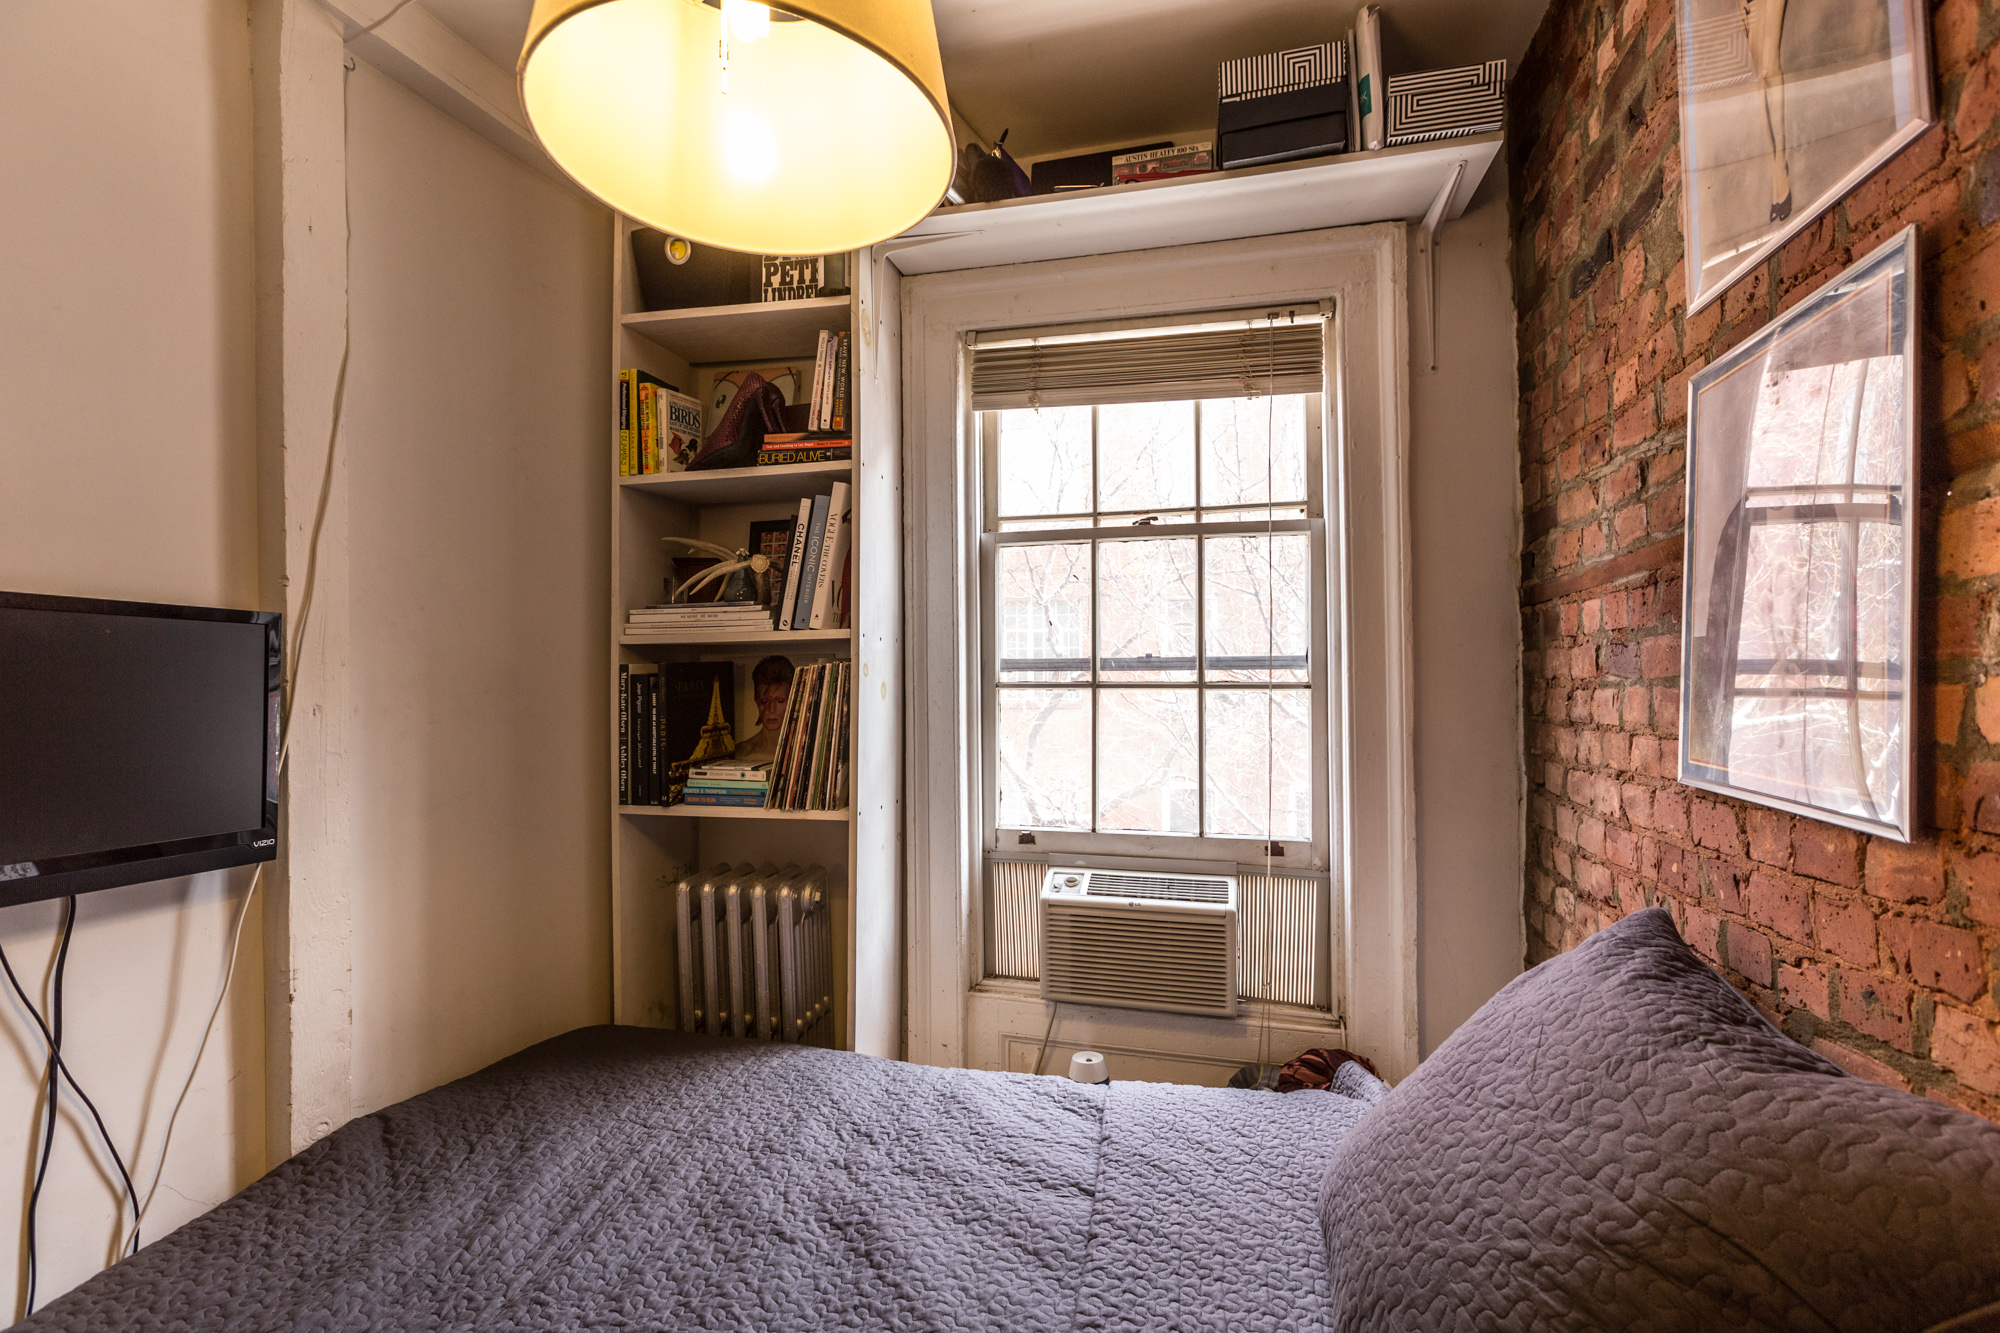 How one new yorker lives comfortably in 90 square feet for 100 sq ft room ideas